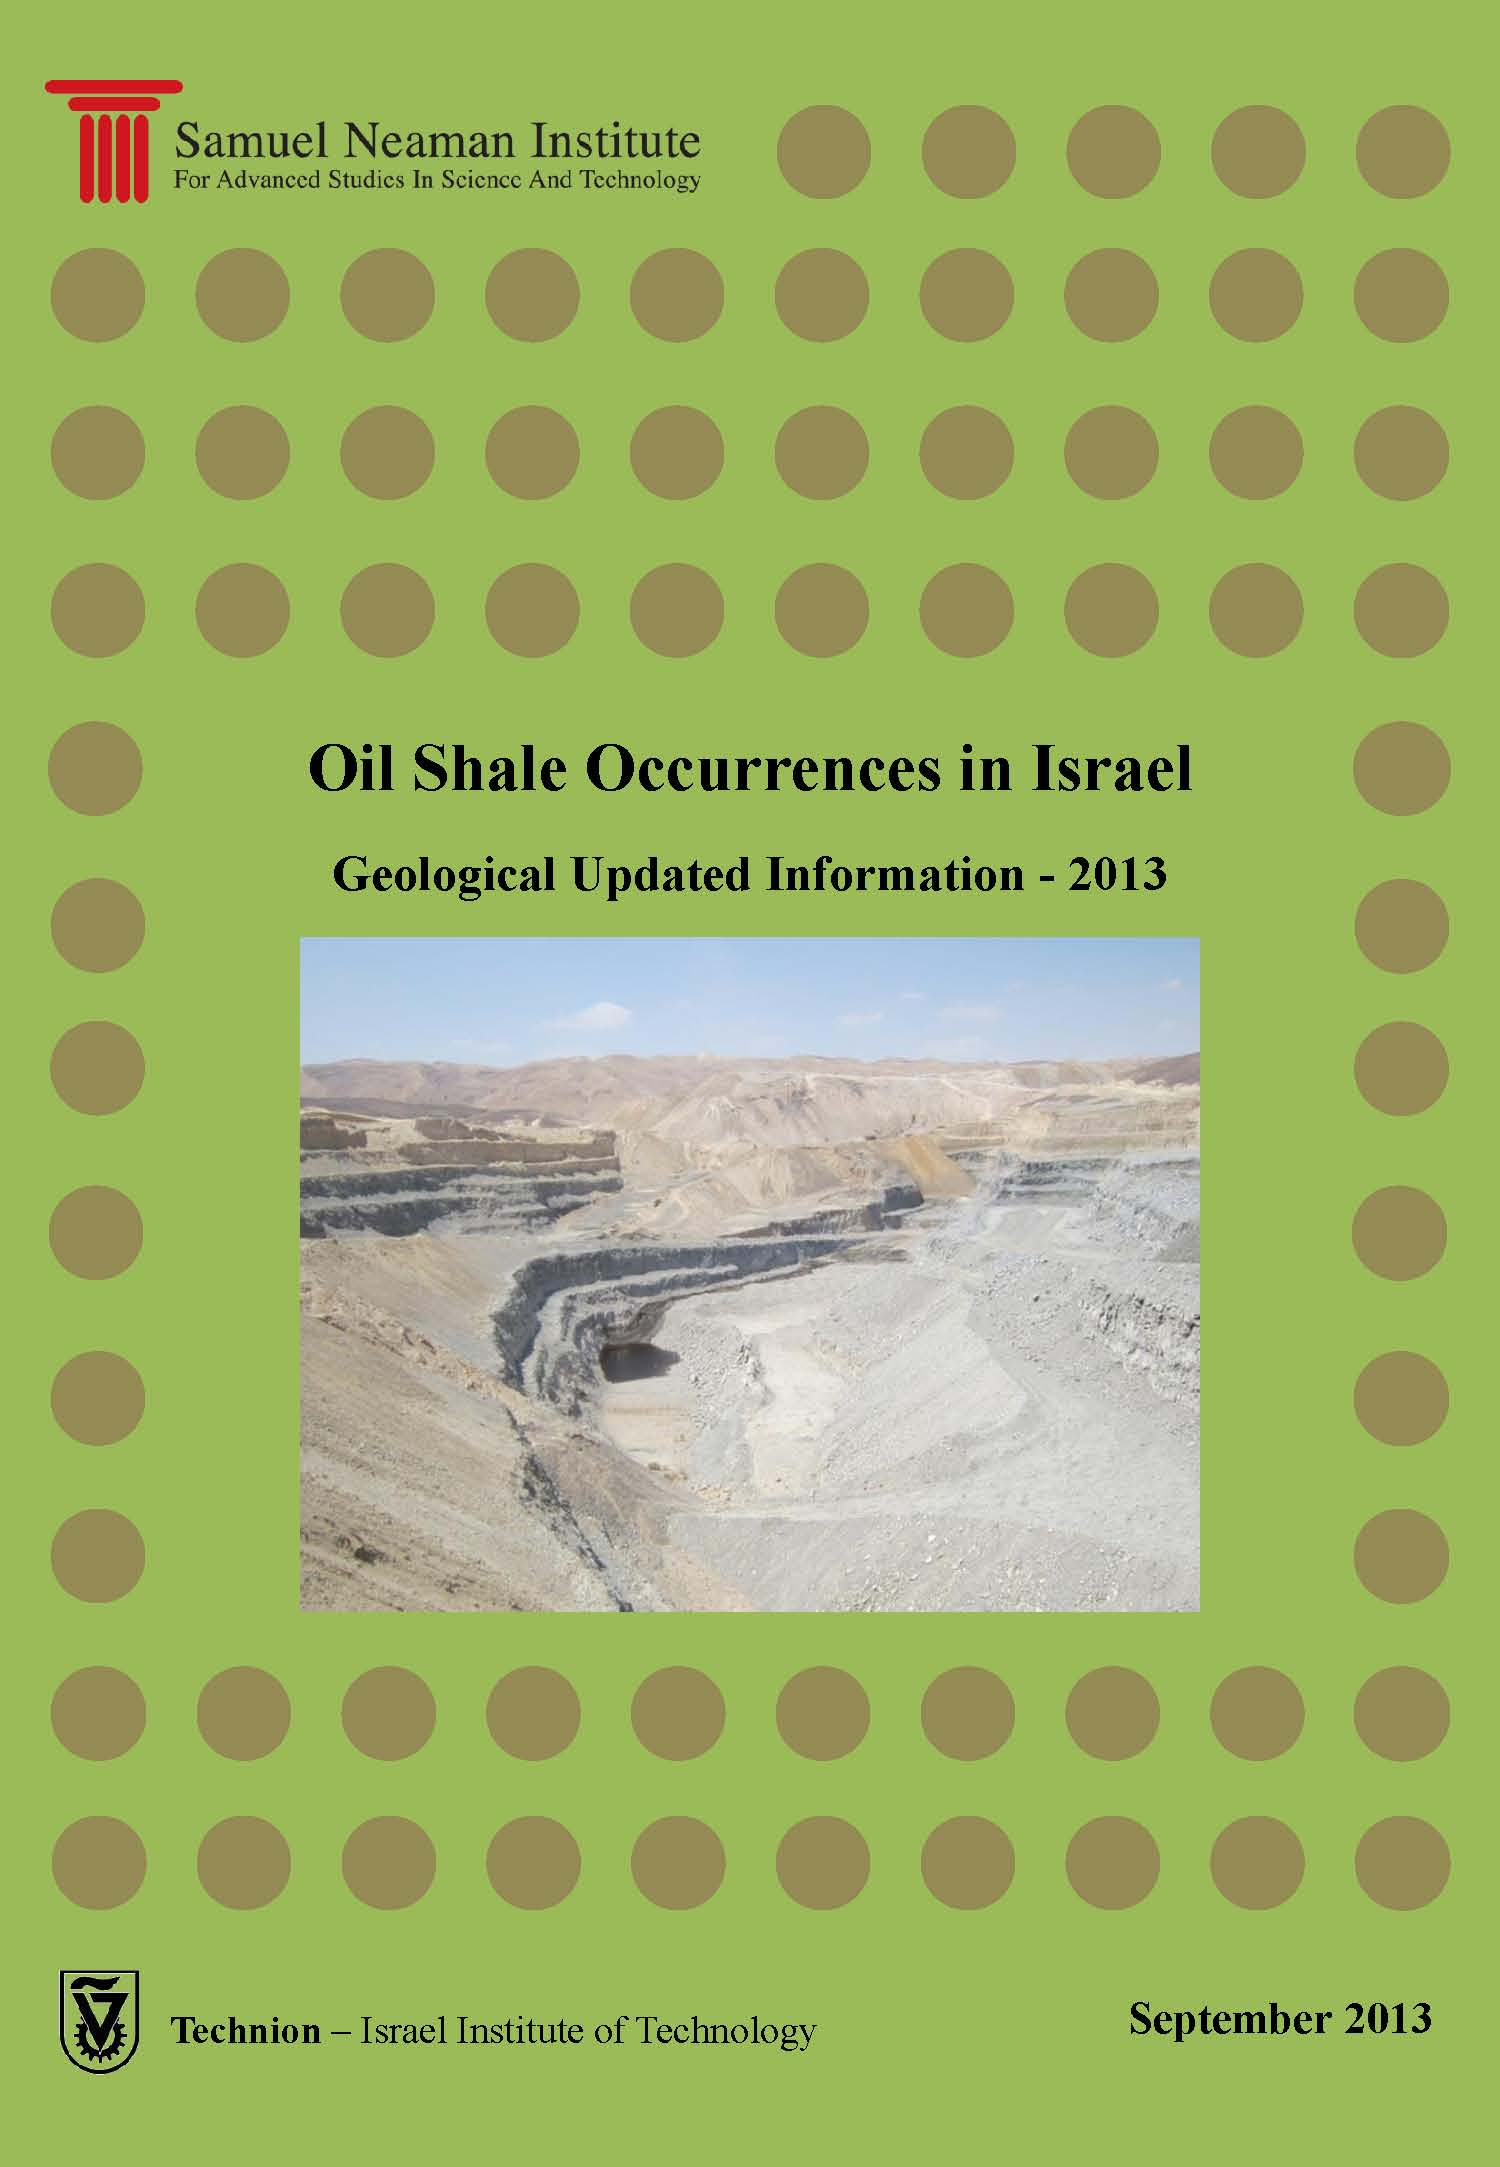 Oil Shale Occurrences in Israel - Geological Updated information